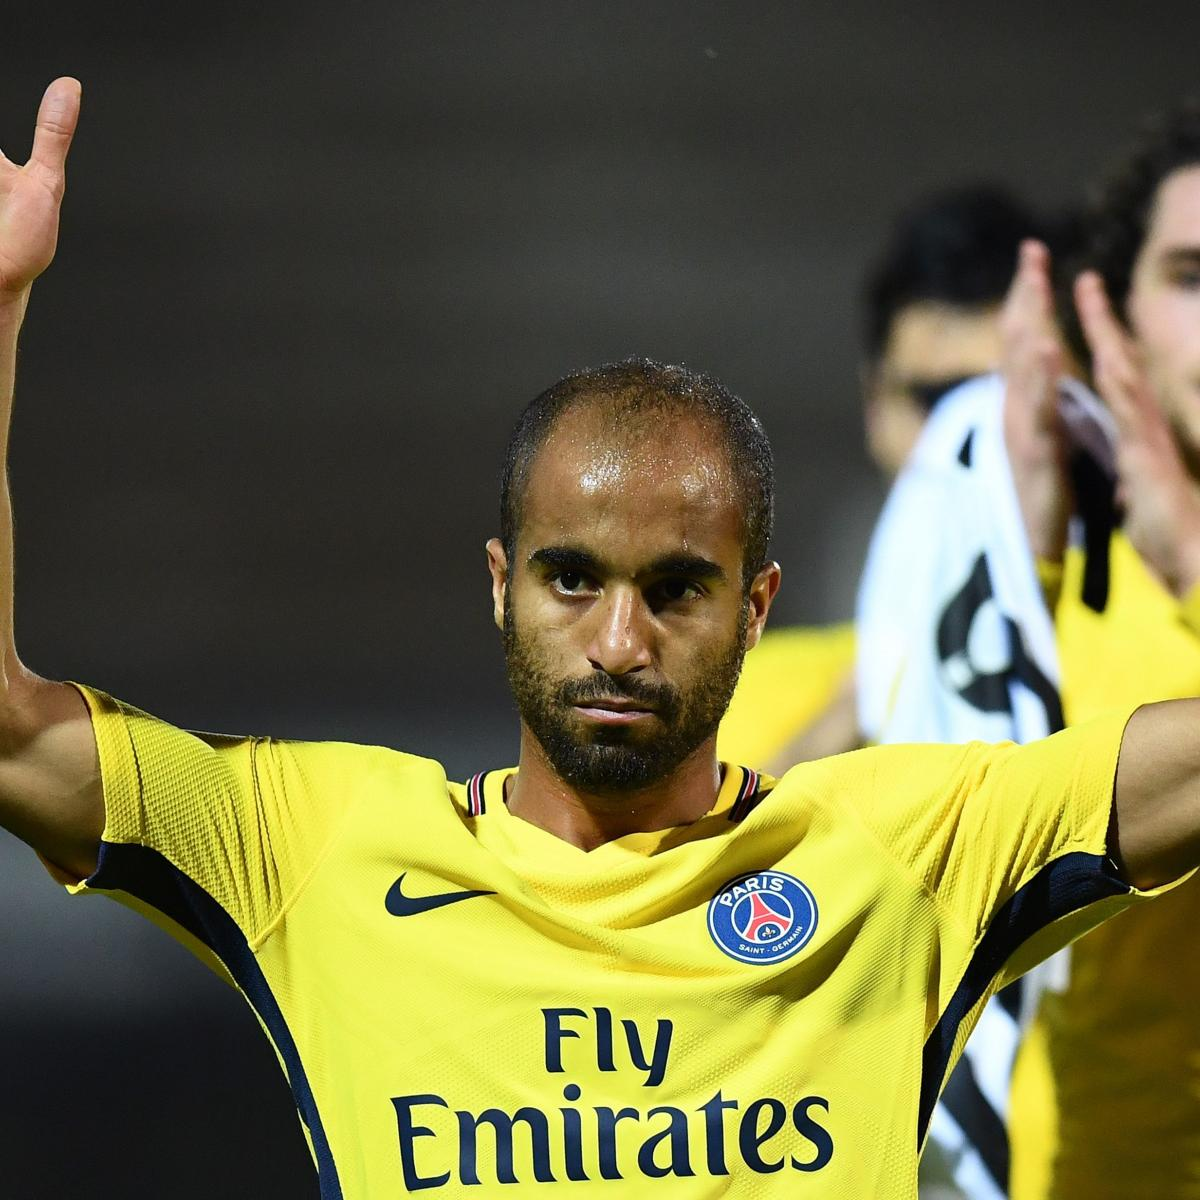 Paris Saint Germain S Lucas Moura Arrives For Tottenham: Tottenham Transfer News: Lucas Moura Reportedly In London